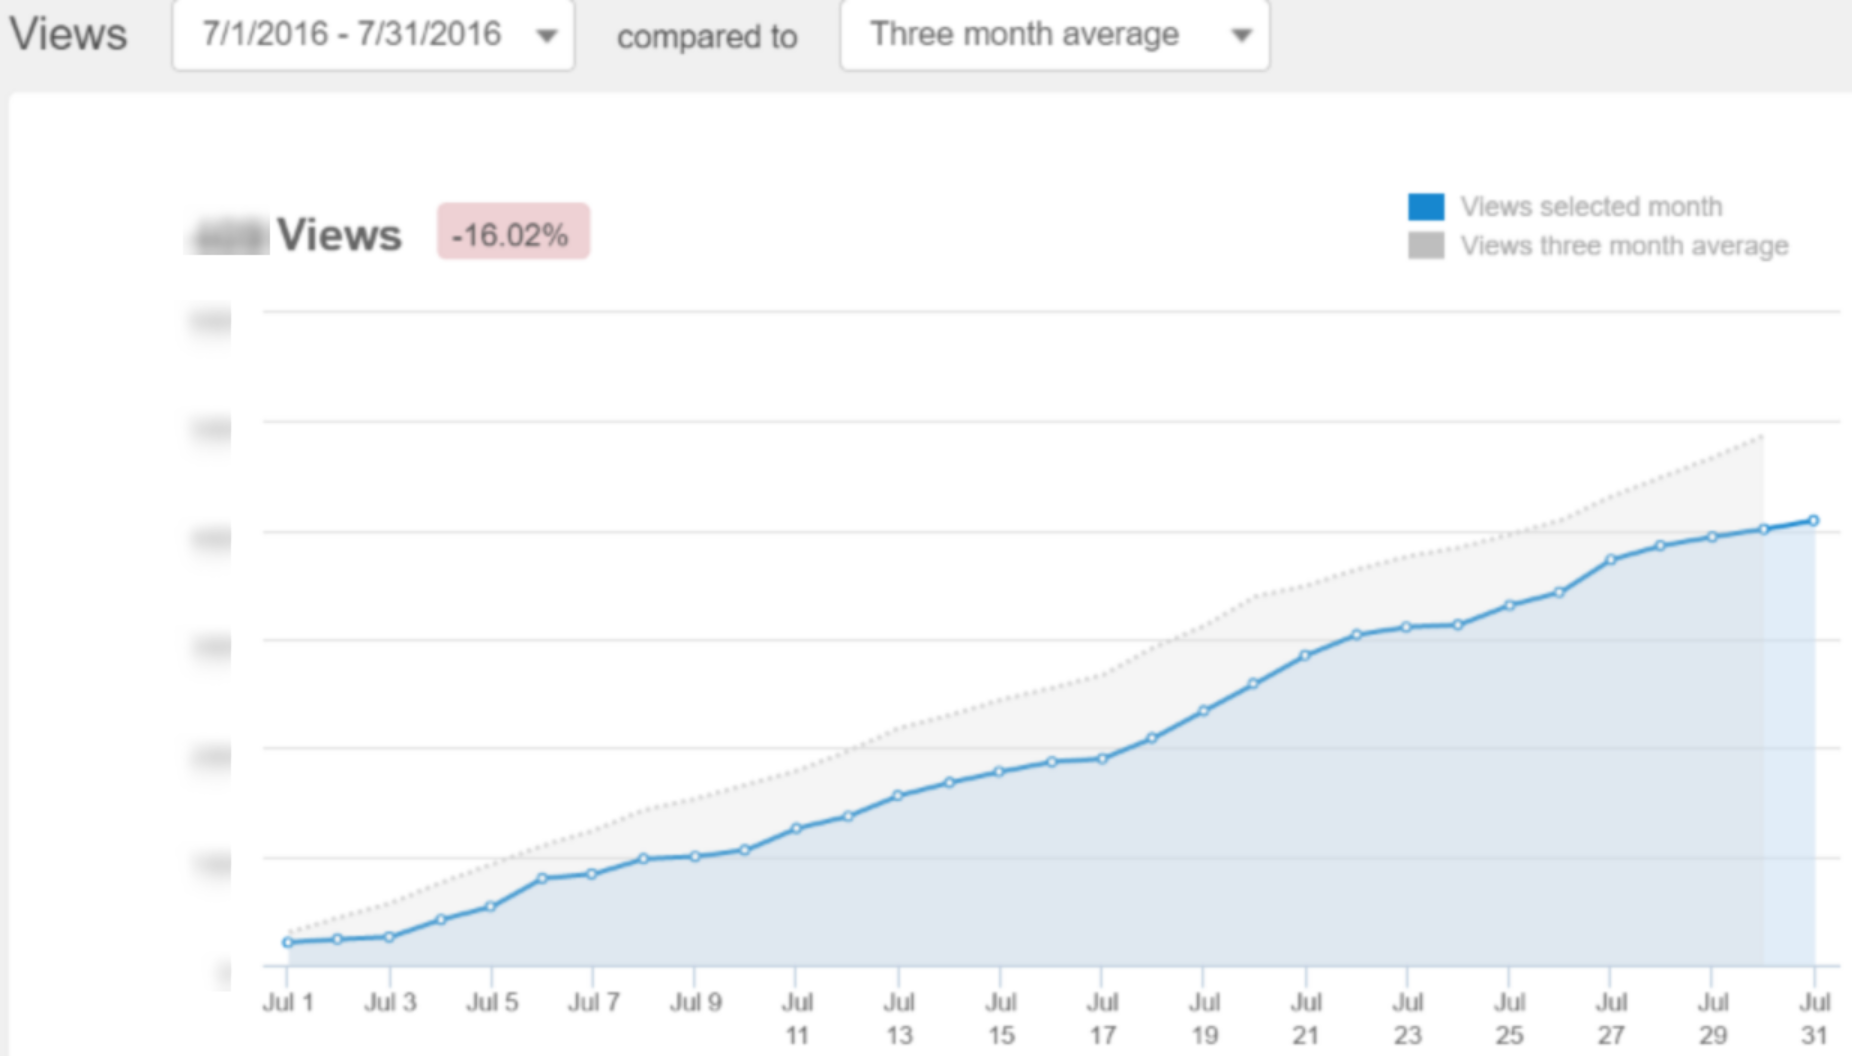 July overview vs 3 month average